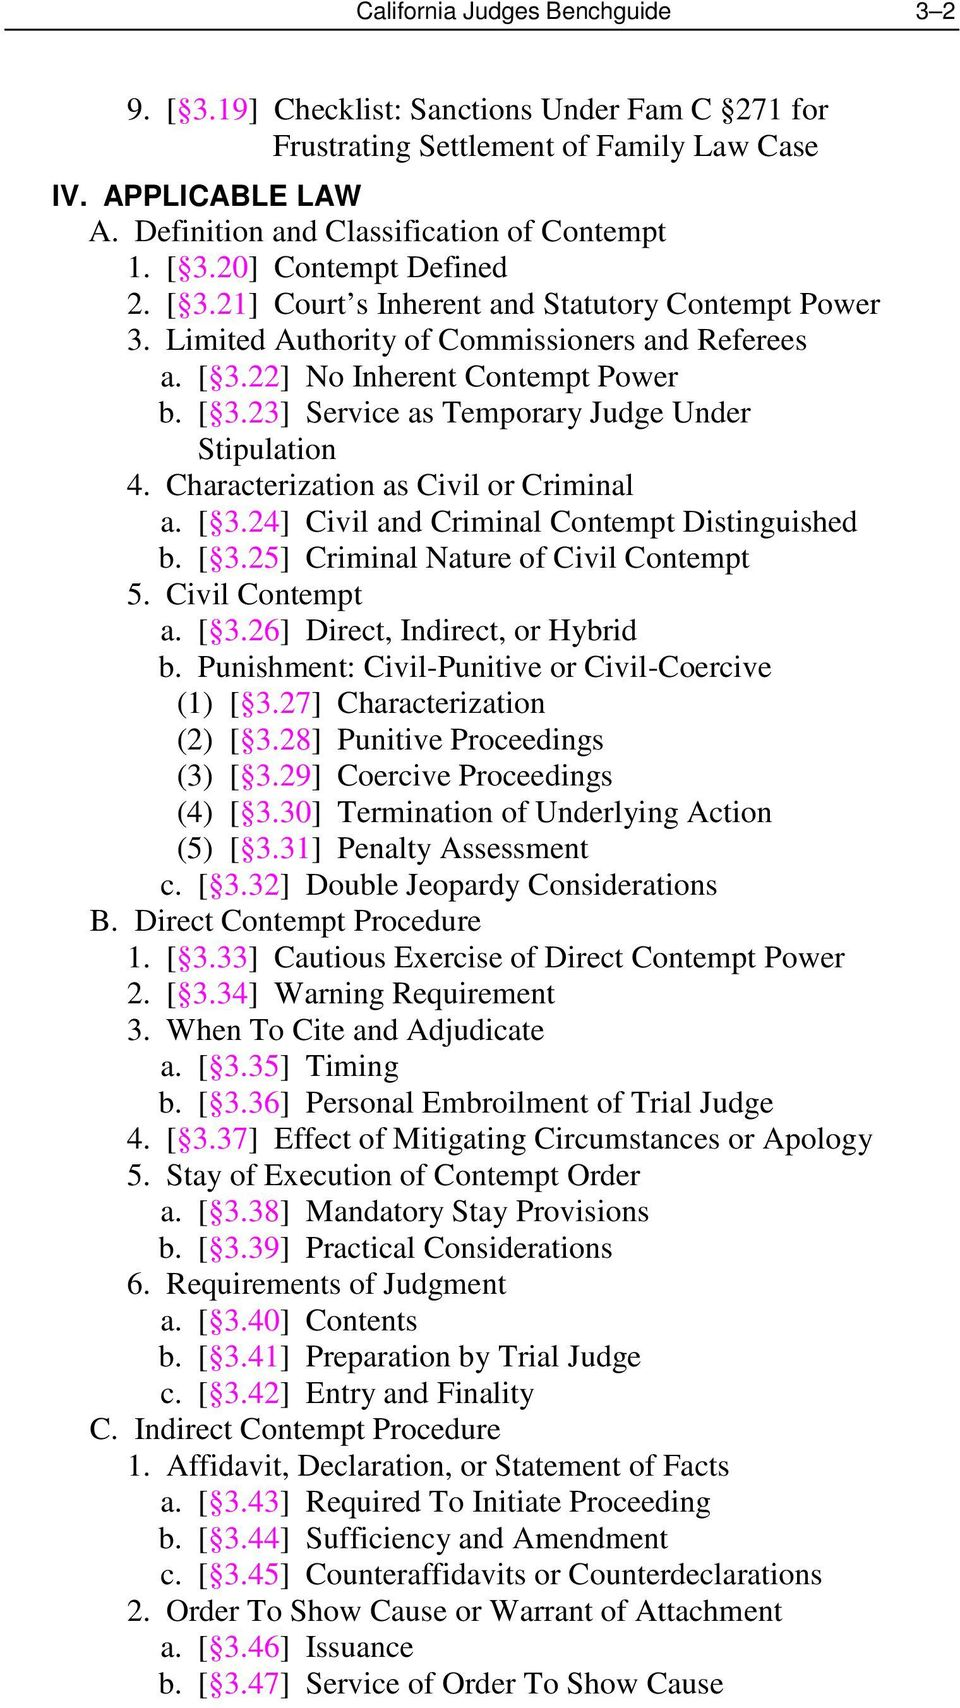 Characterization as Civil or Criminal a. [ 3.24] Civil and Criminal Contempt Distinguished b. [ 3.25] Criminal Nature of Civil Contempt 5. Civil Contempt a. [ 3.26] Direct, Indirect, or Hybrid b.